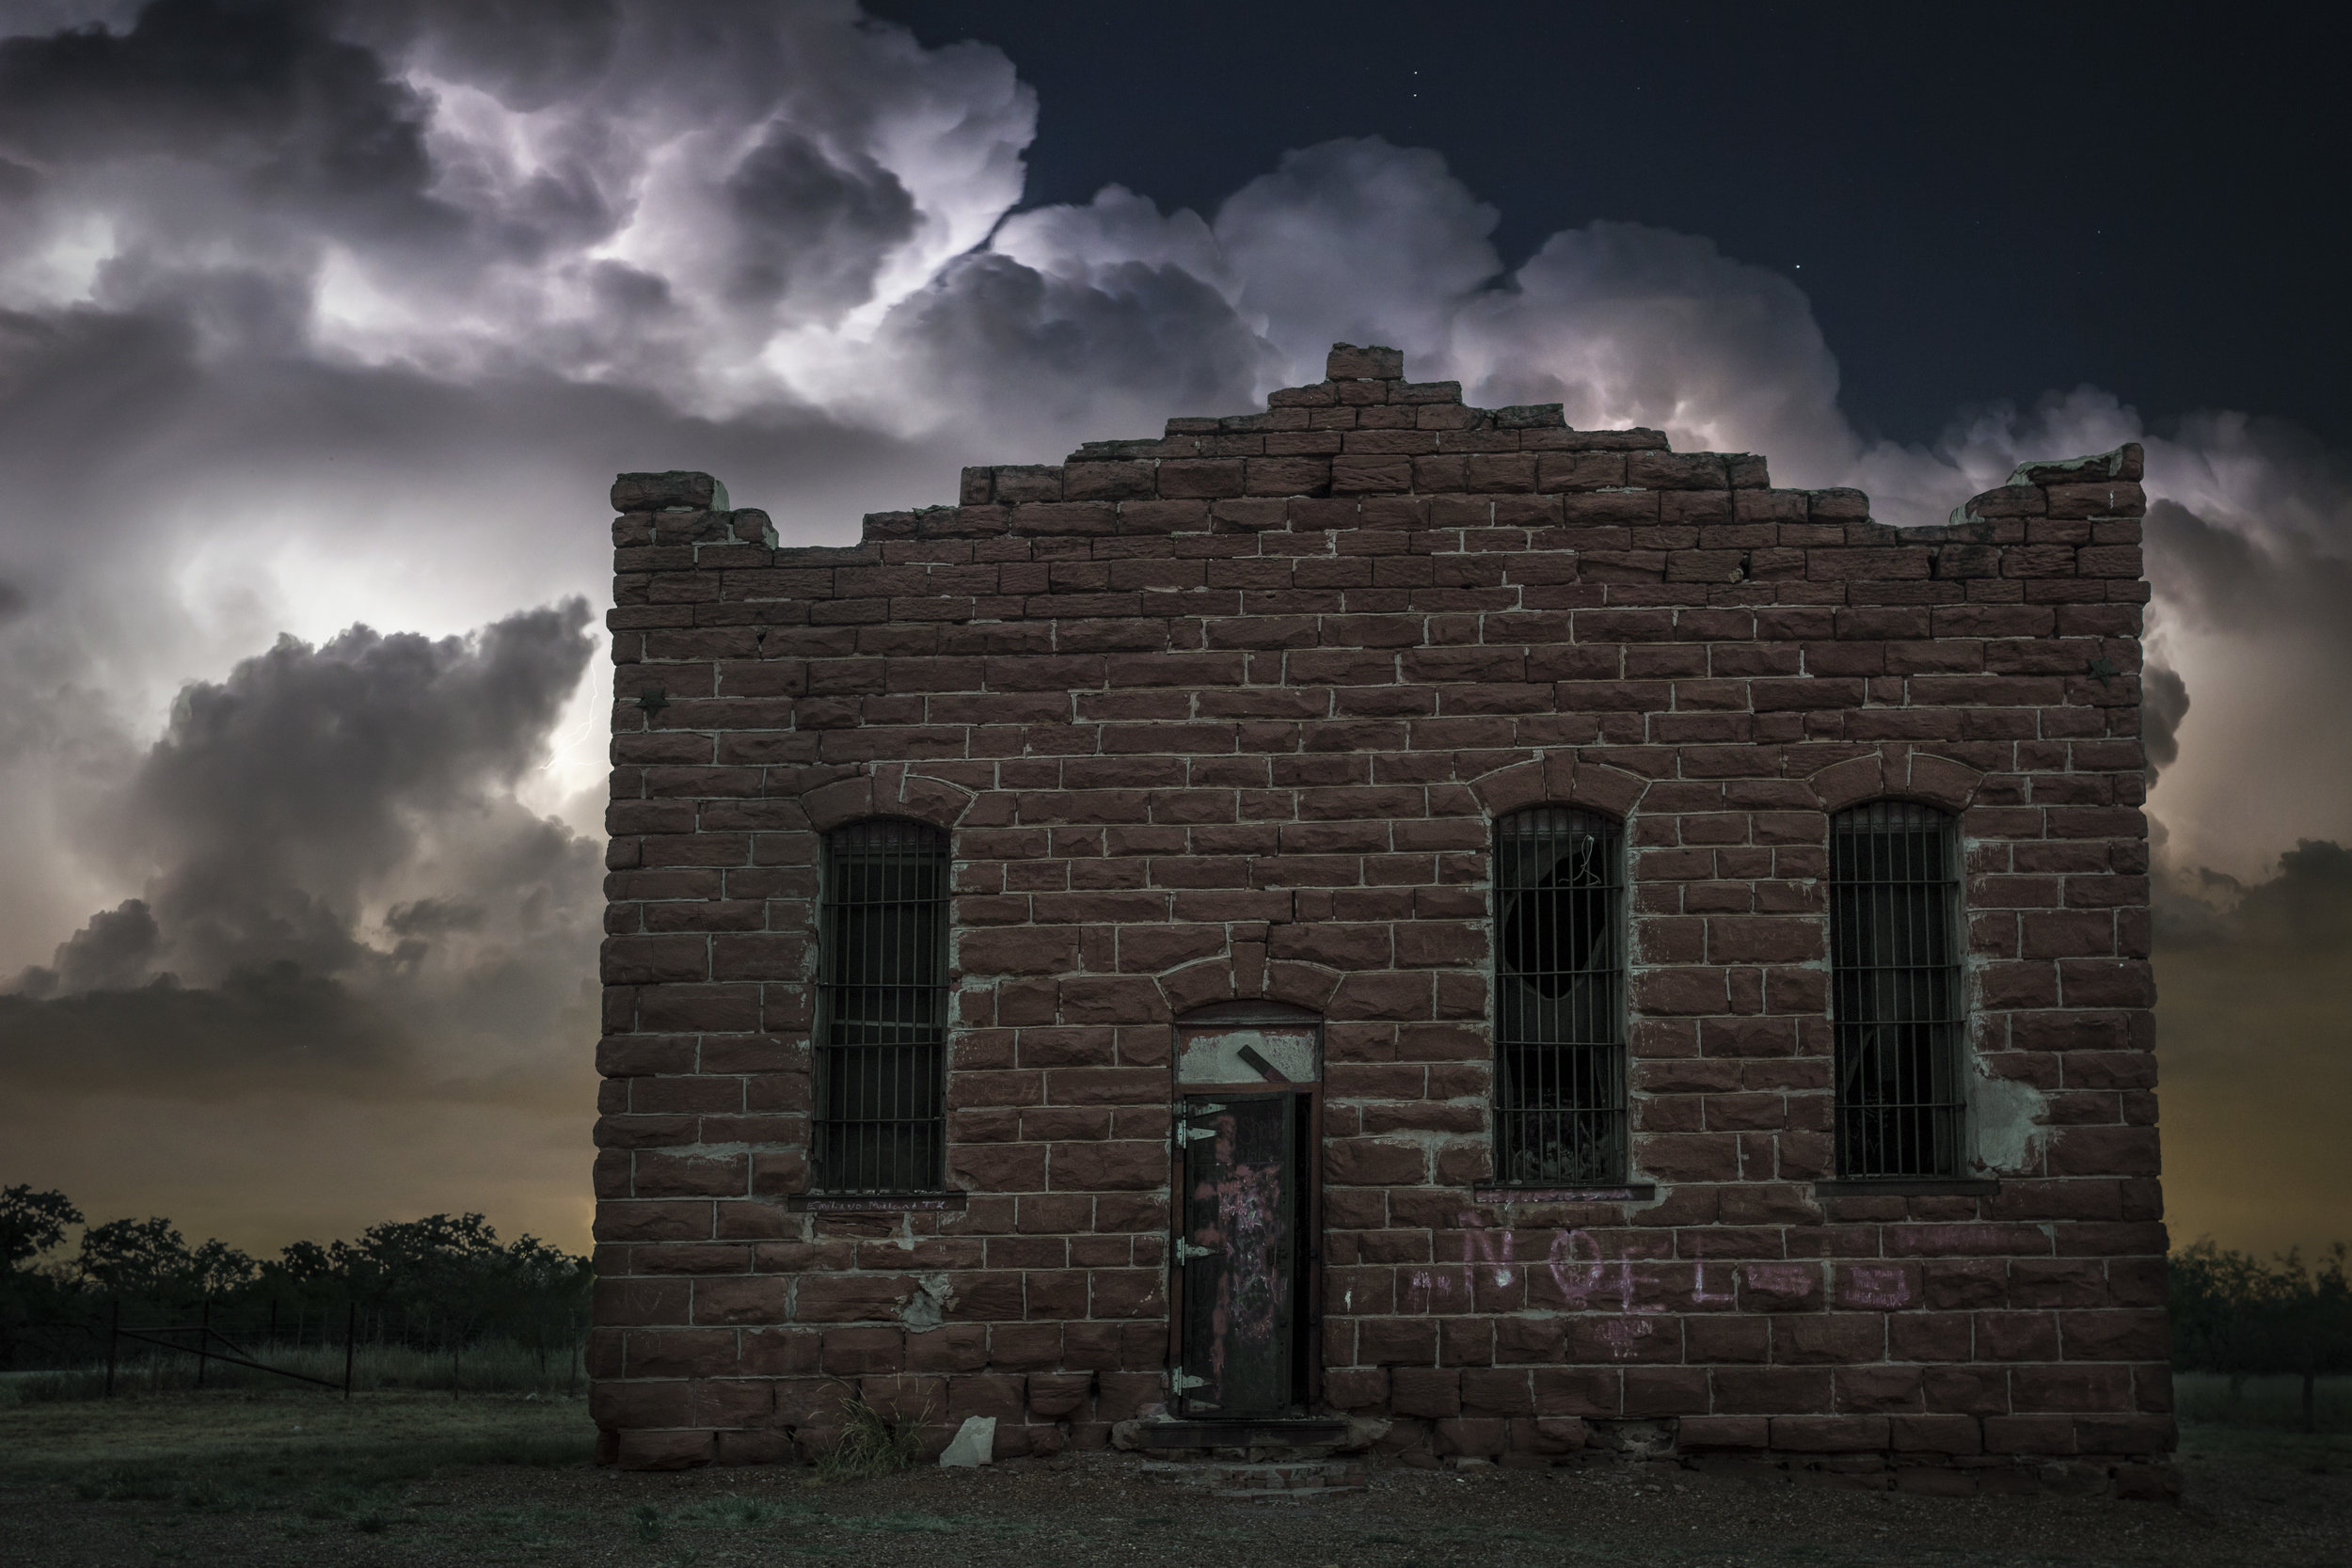 Thunderstorm lights up the sky behind the Old Kent County Jail.